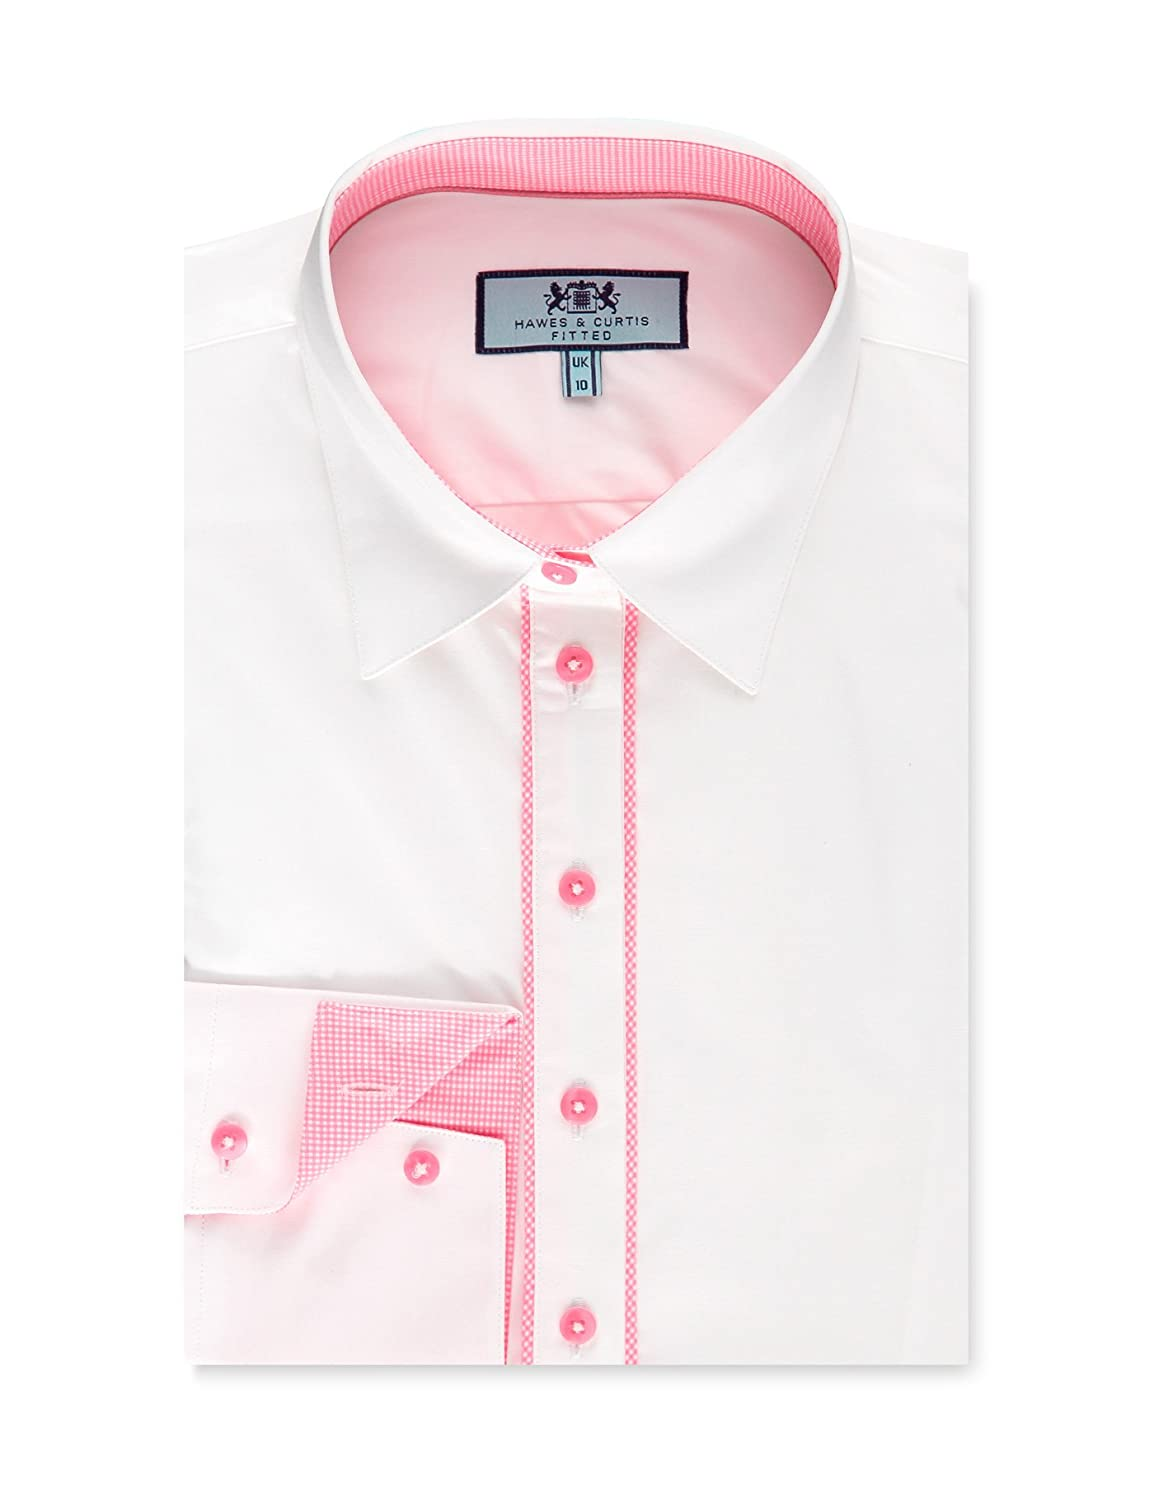 e29979a6 Top7: HAWES & CURTIS Womens White Fitted Shirt With Contrast Detail -  Single Cuff